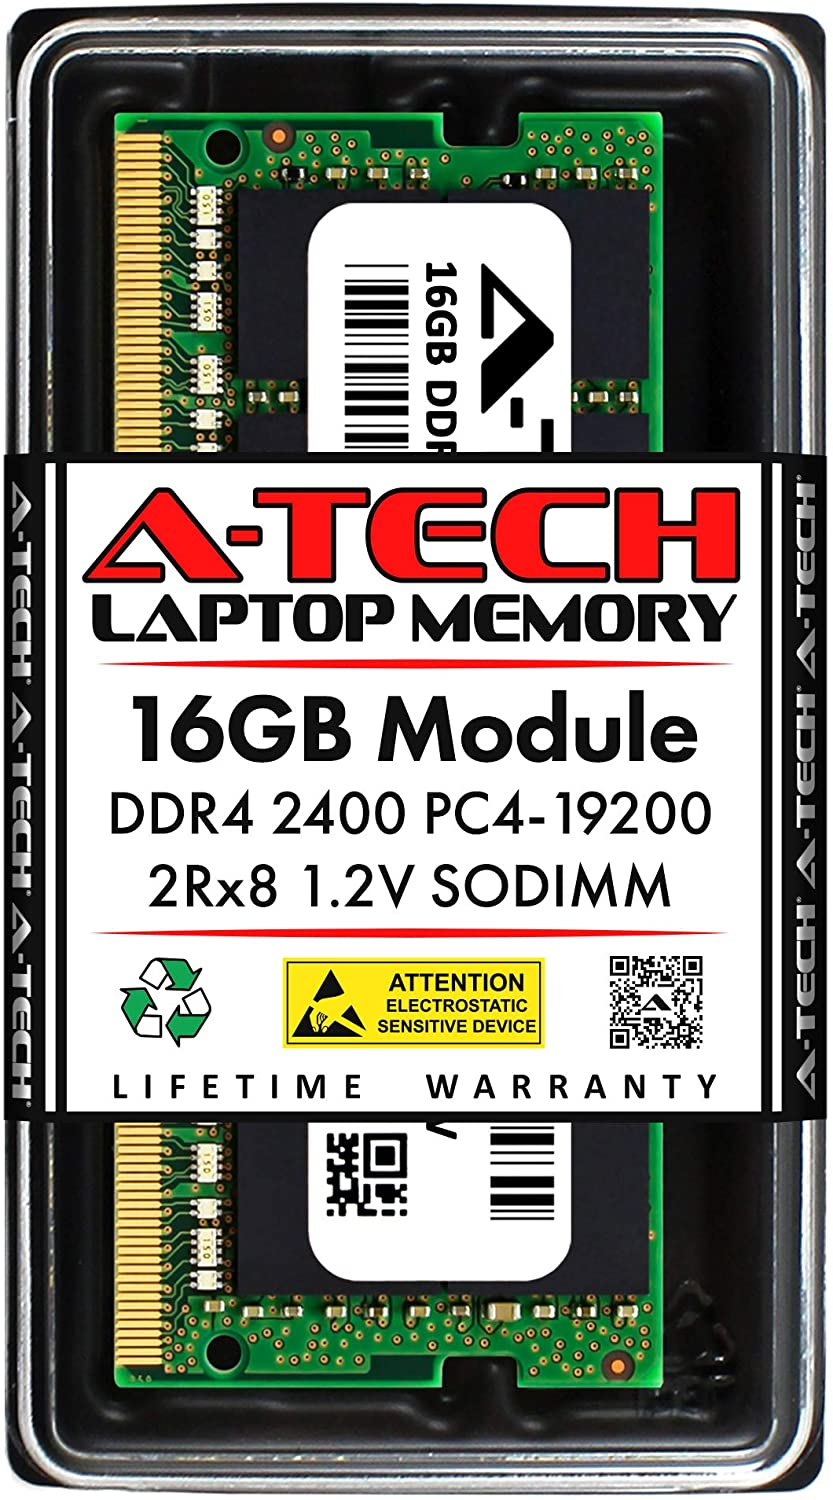 A-Tech 16GB DDR4 2400MHz SODIMM PC4-19200 2Rx8 Dual Rank 260-Pin CL17 1.2V Non-ECC Unbuffered Notebook Laptop RAM Memory Upgrade Module